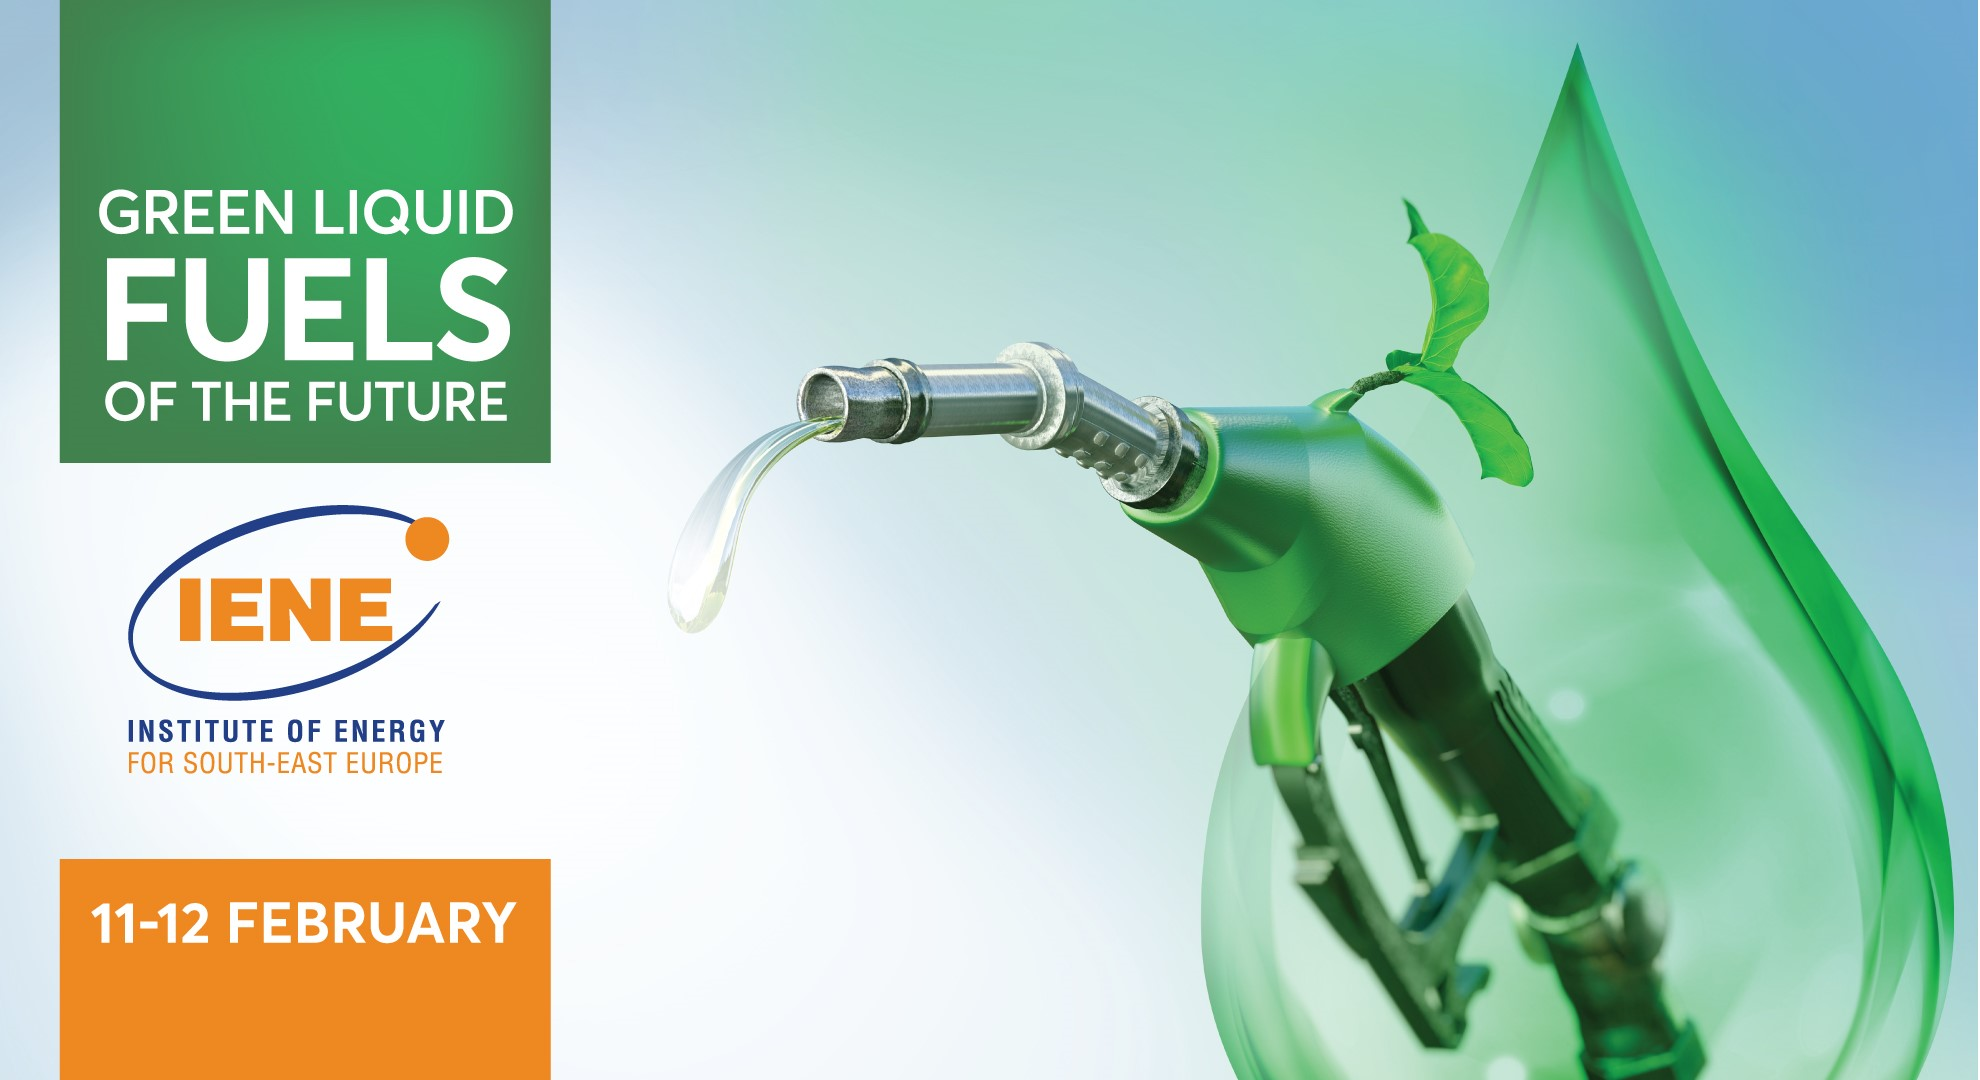 """Presentations & Videos from IENE's conference on """"Green Liquid Fuels of the Future"""" now available"""